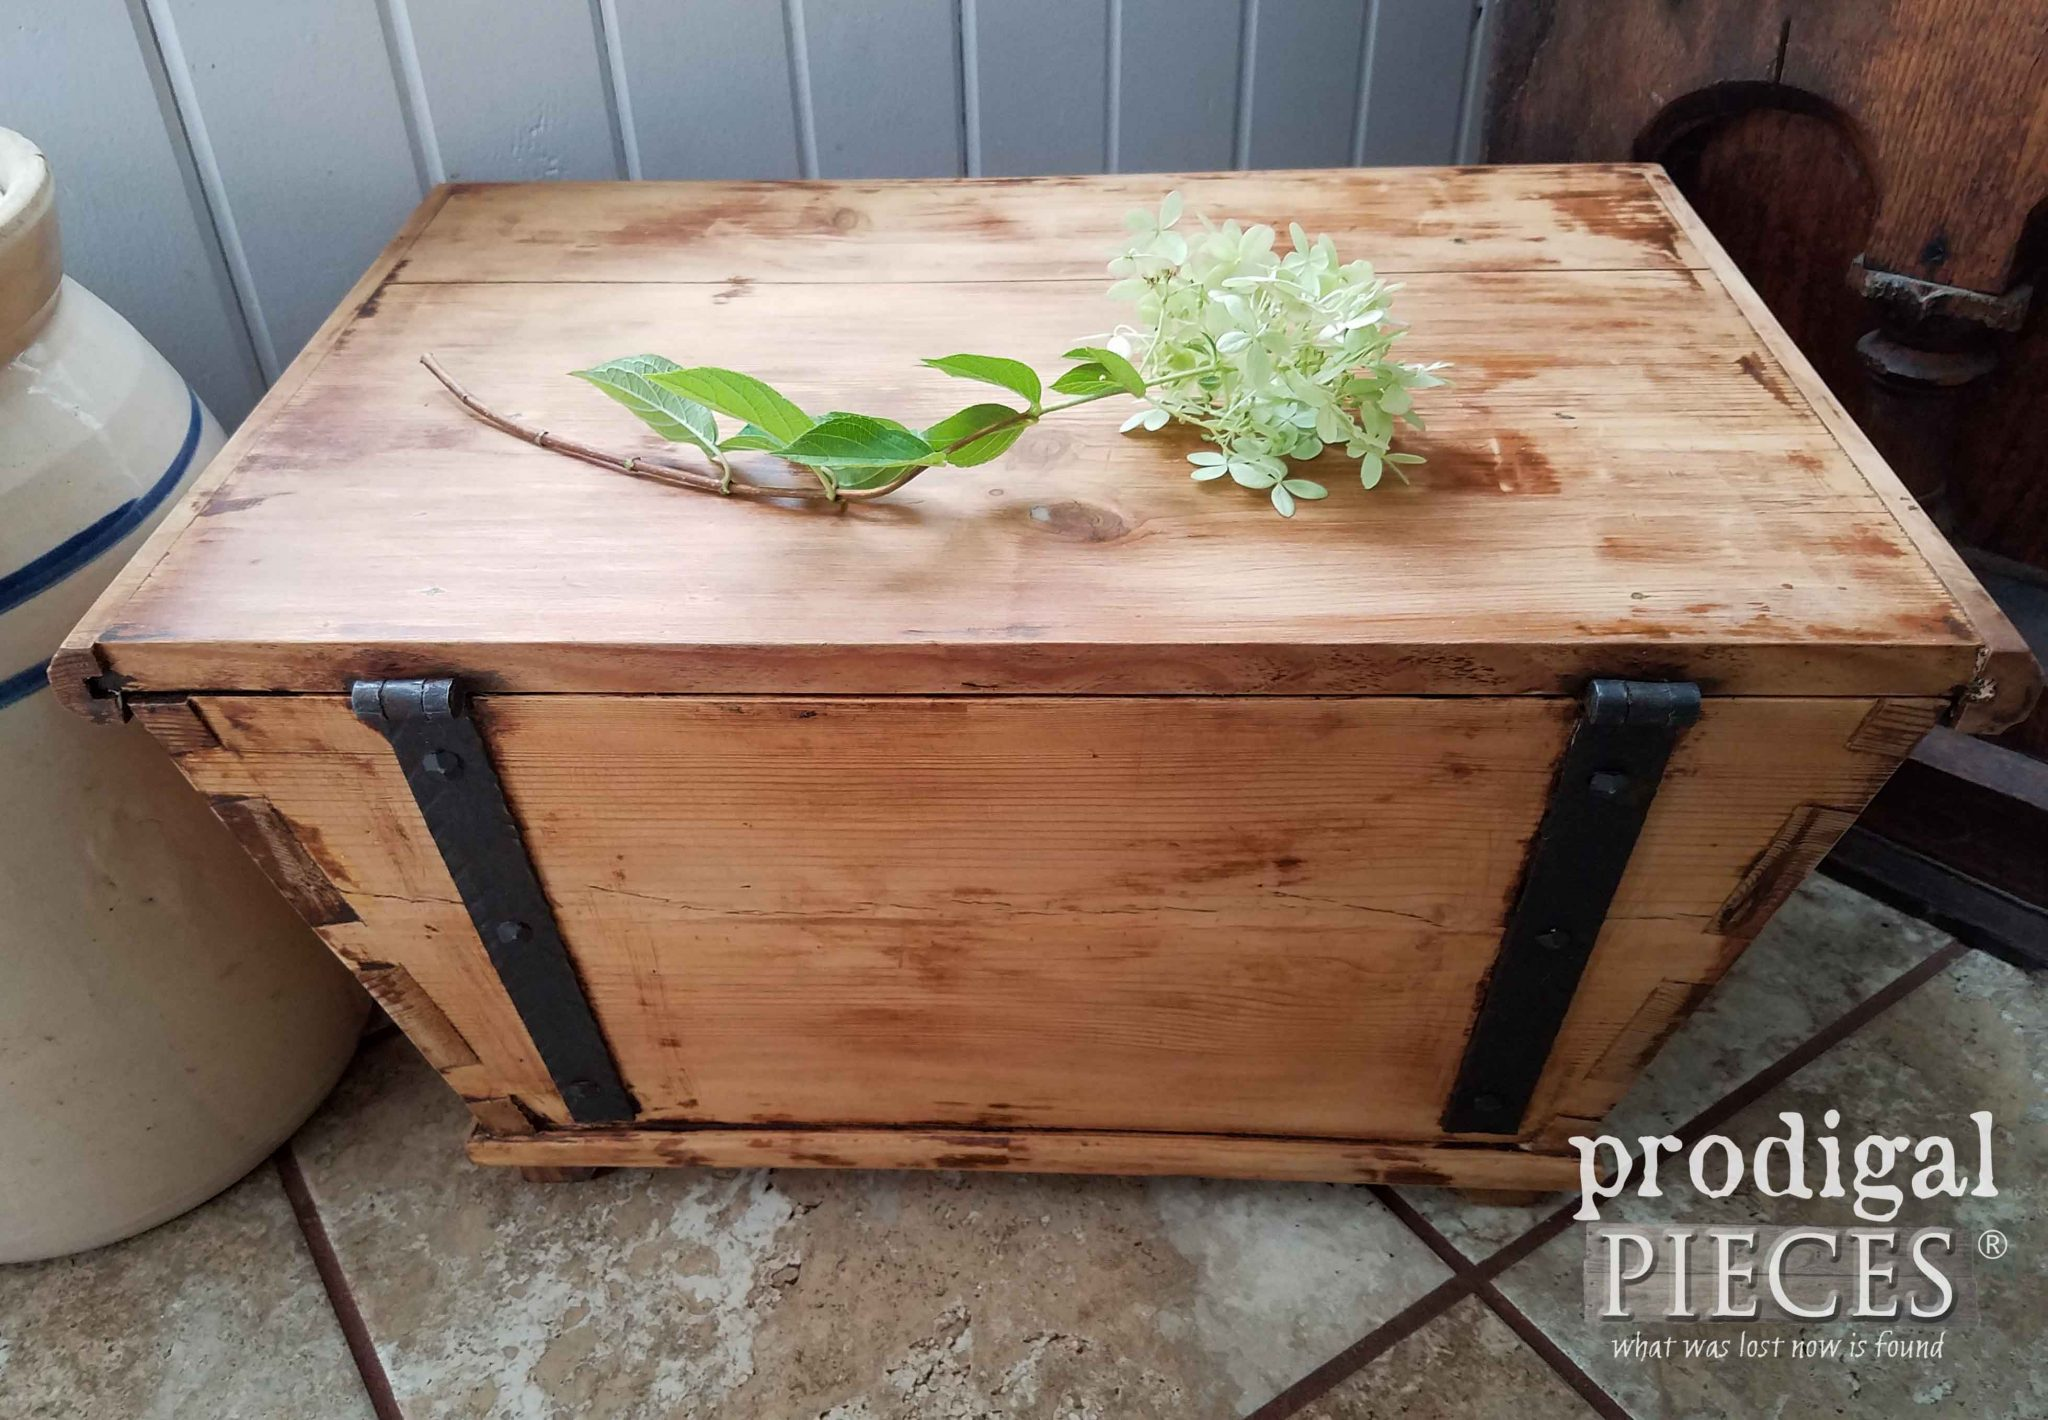 Vintage Handmade Wooden Chest by Prodigal Pieces | prodigalpieces.com